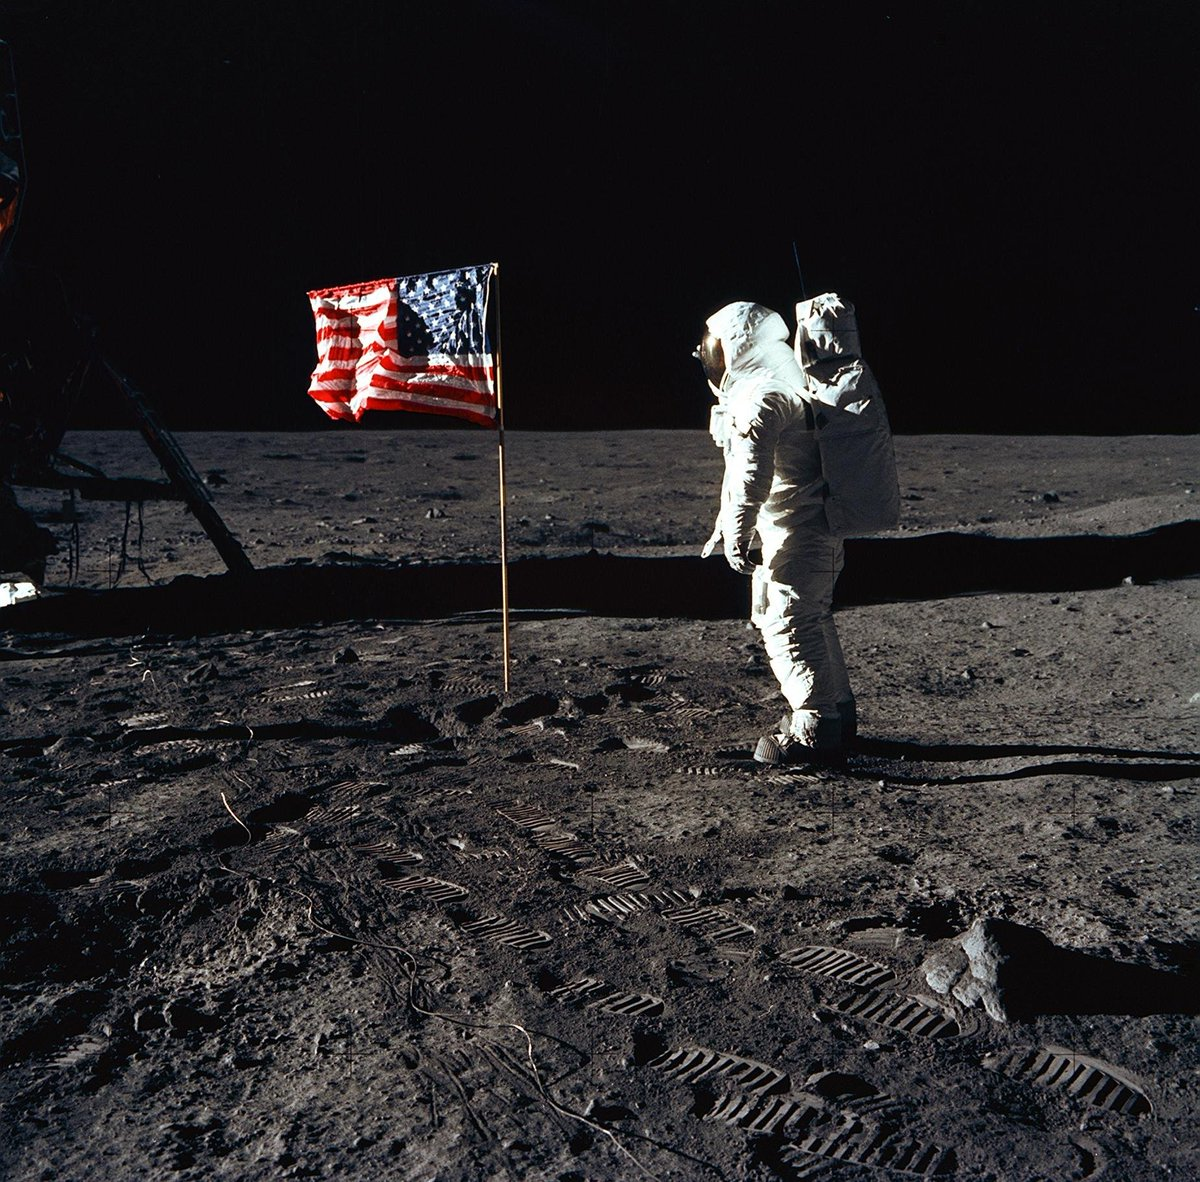 #OnThisDay in 1969, Wapakoneta, OH native Neil Armstrong became the first man to walk on the moon. The world watched in wonder as he and fellow astronauts Buzz Aldrin and Michael Collins did what no one else had ever done before. . . #apolloXI #apollo11 #lunarlanding #armstrong<br>http://pic.twitter.com/qB7rXAL5Hr